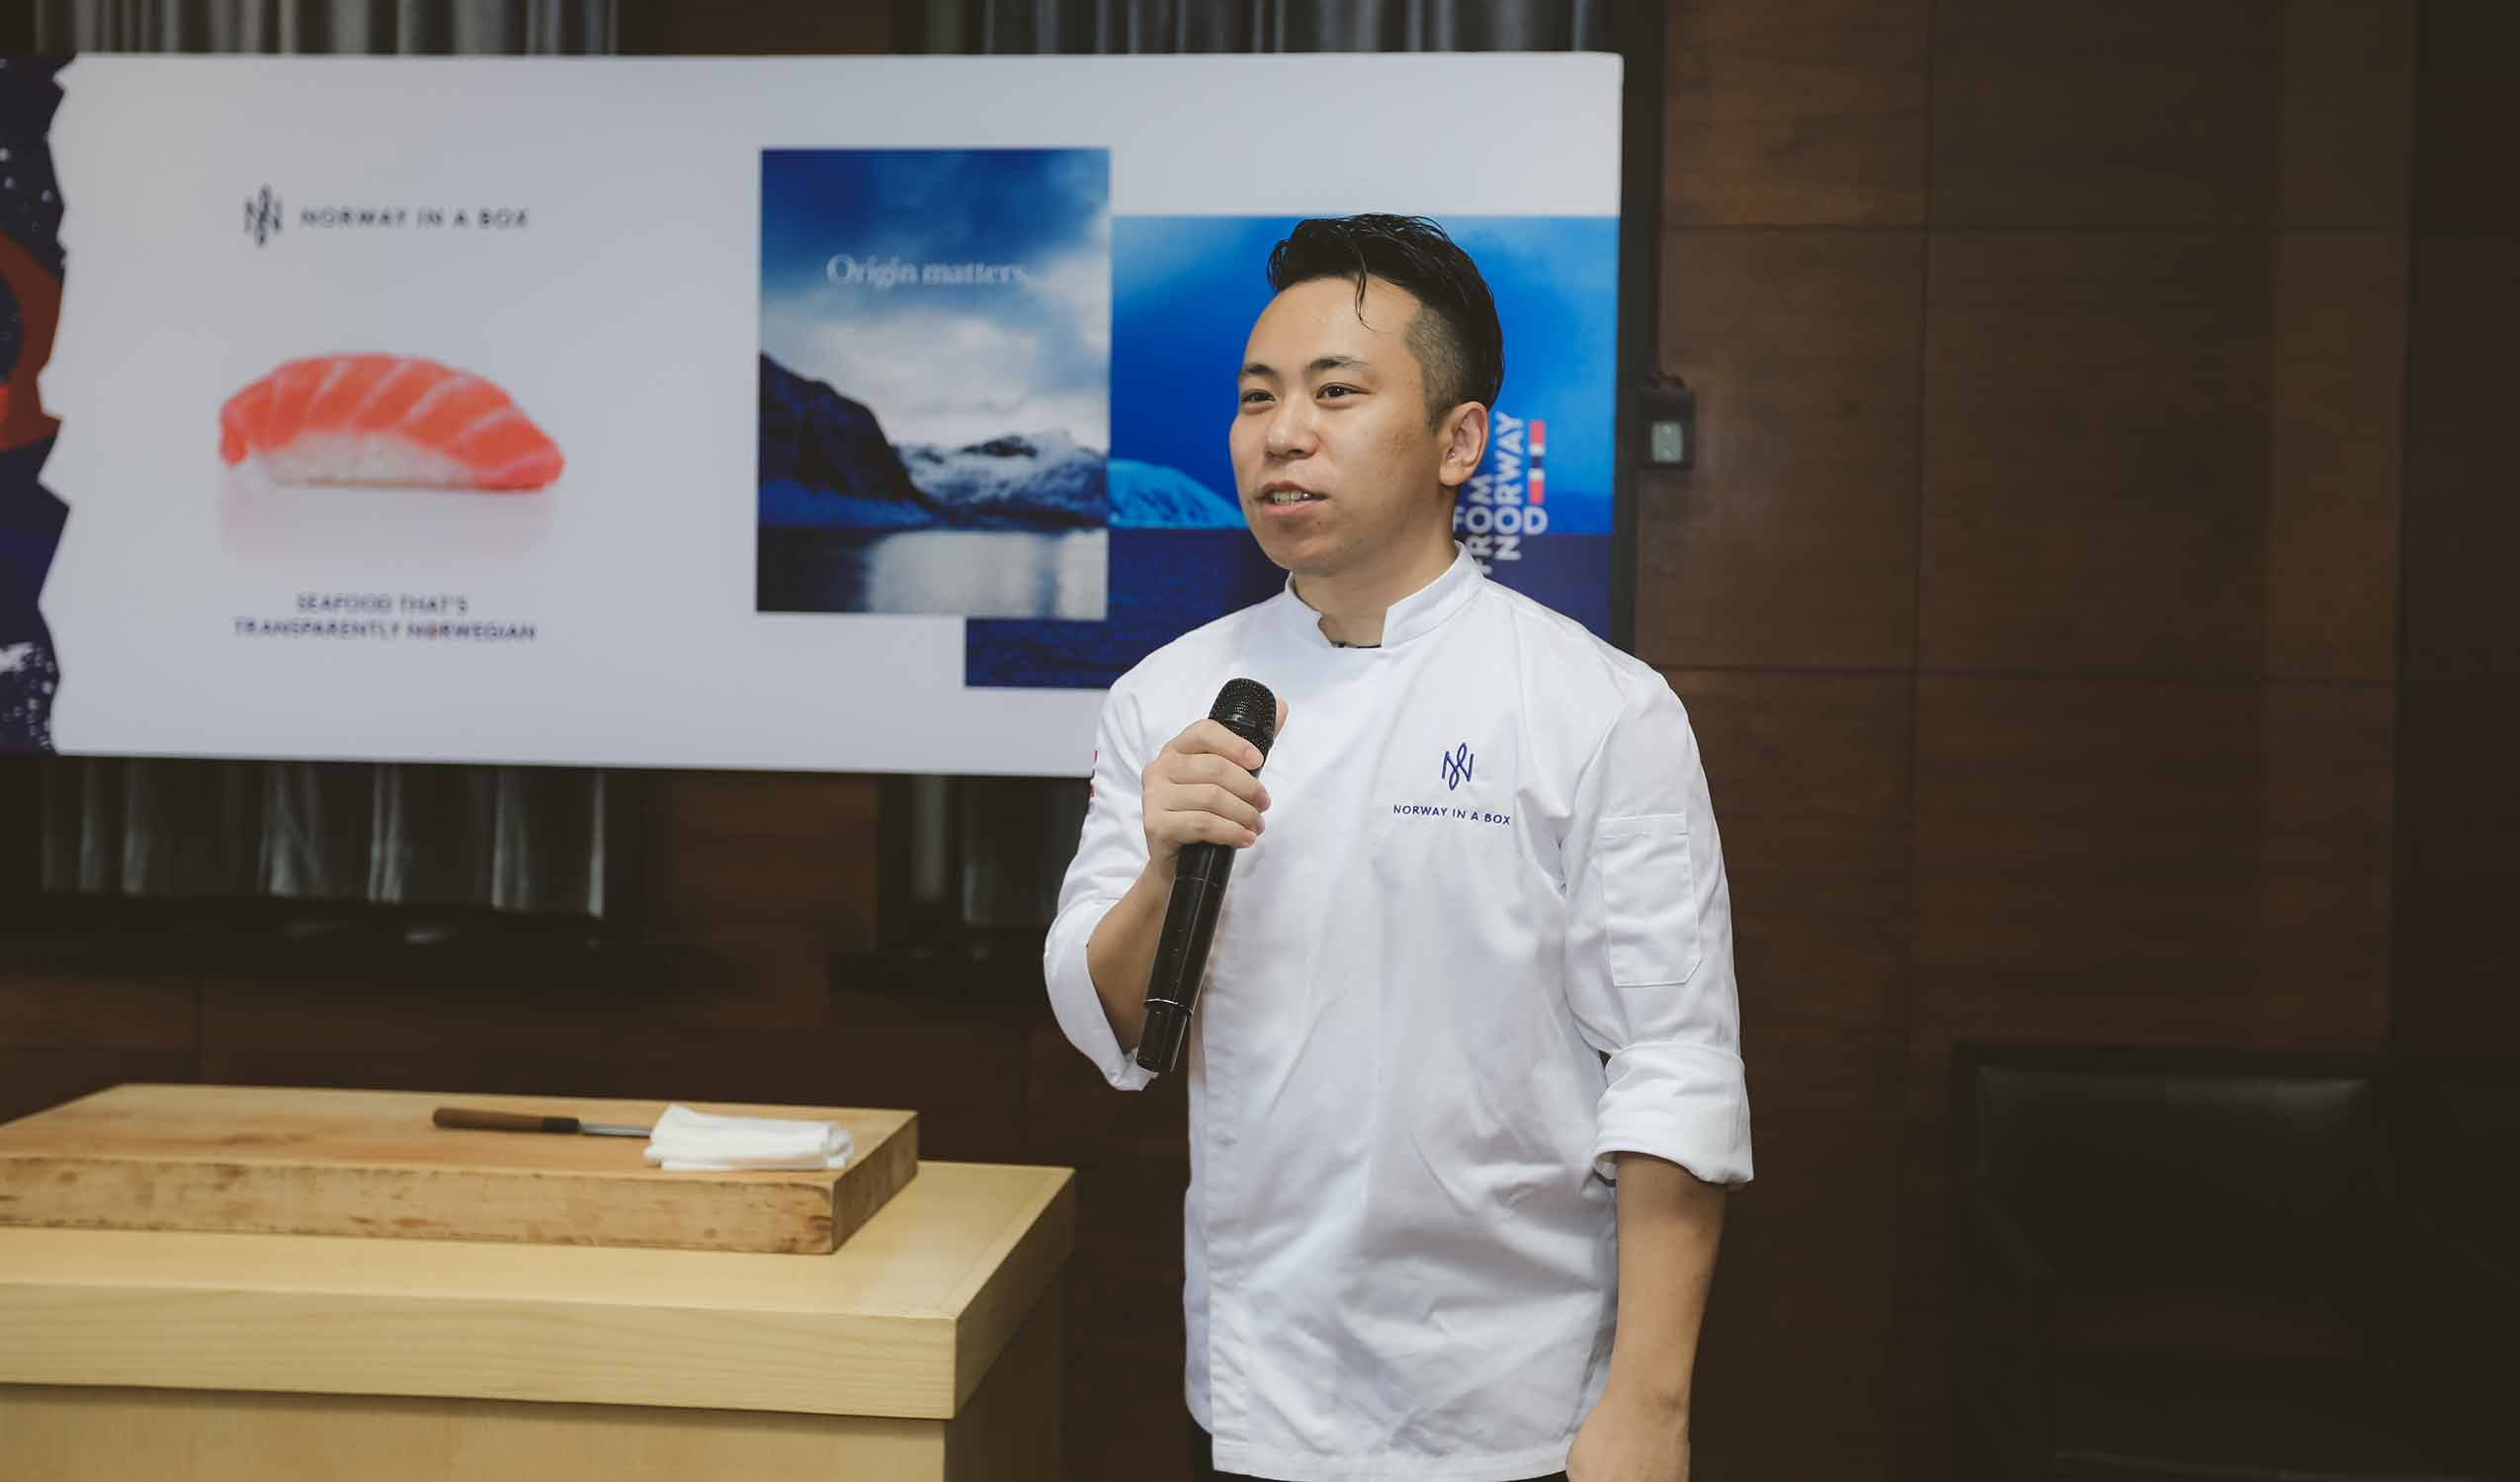 Chef speaking about sustainability at Table of Norway event in Shanghai